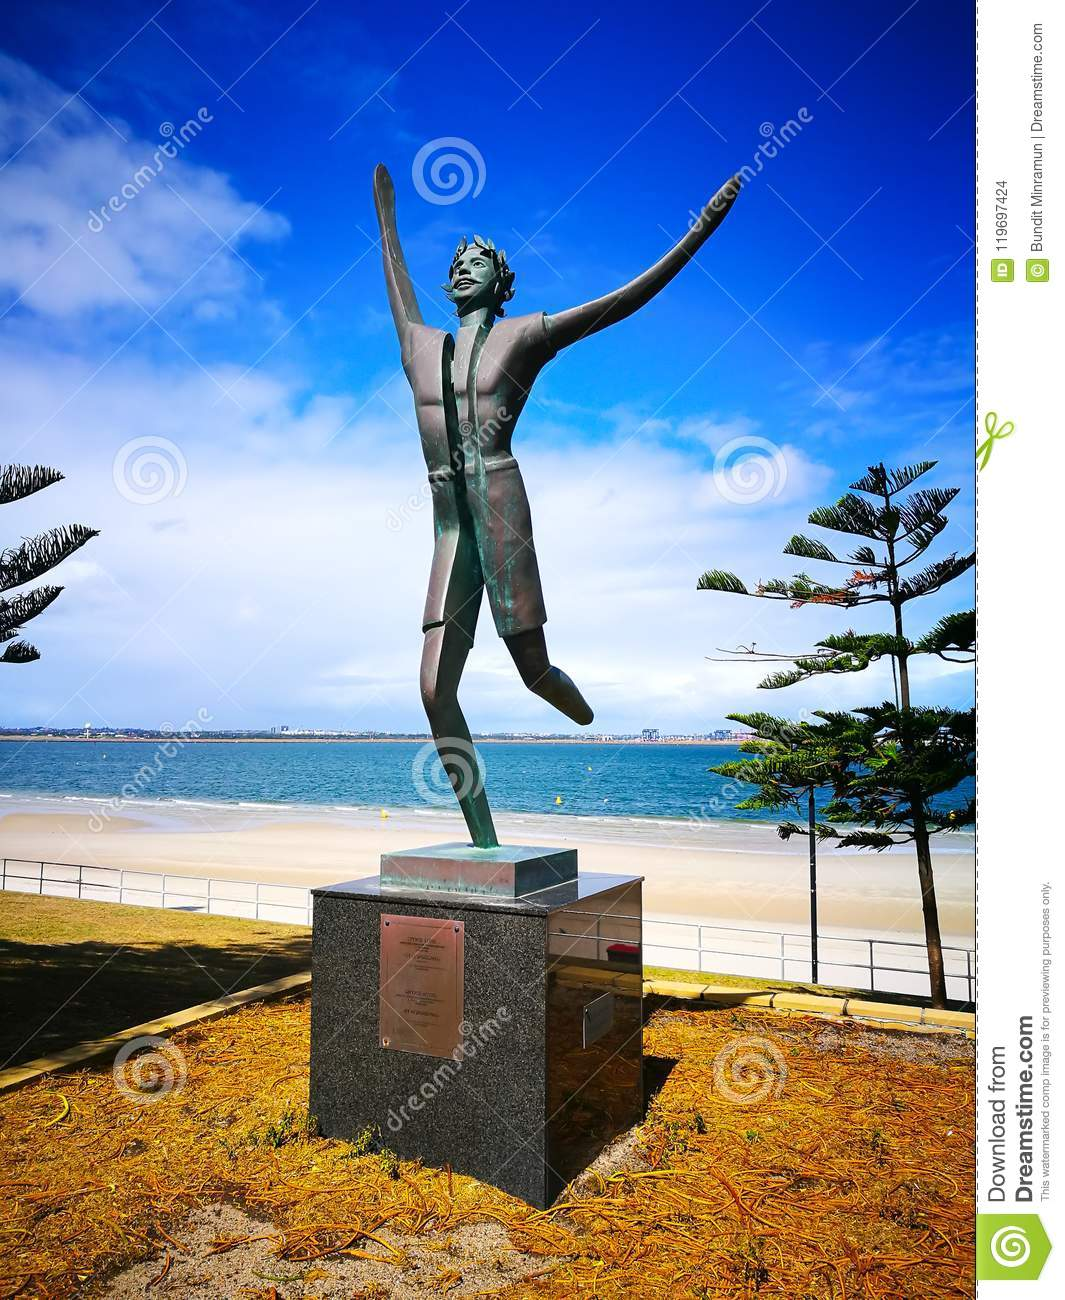 A statue commemorates Spyros Louis, winner of the first Olympic marathon in 1896. at Brighton-le-Sands.